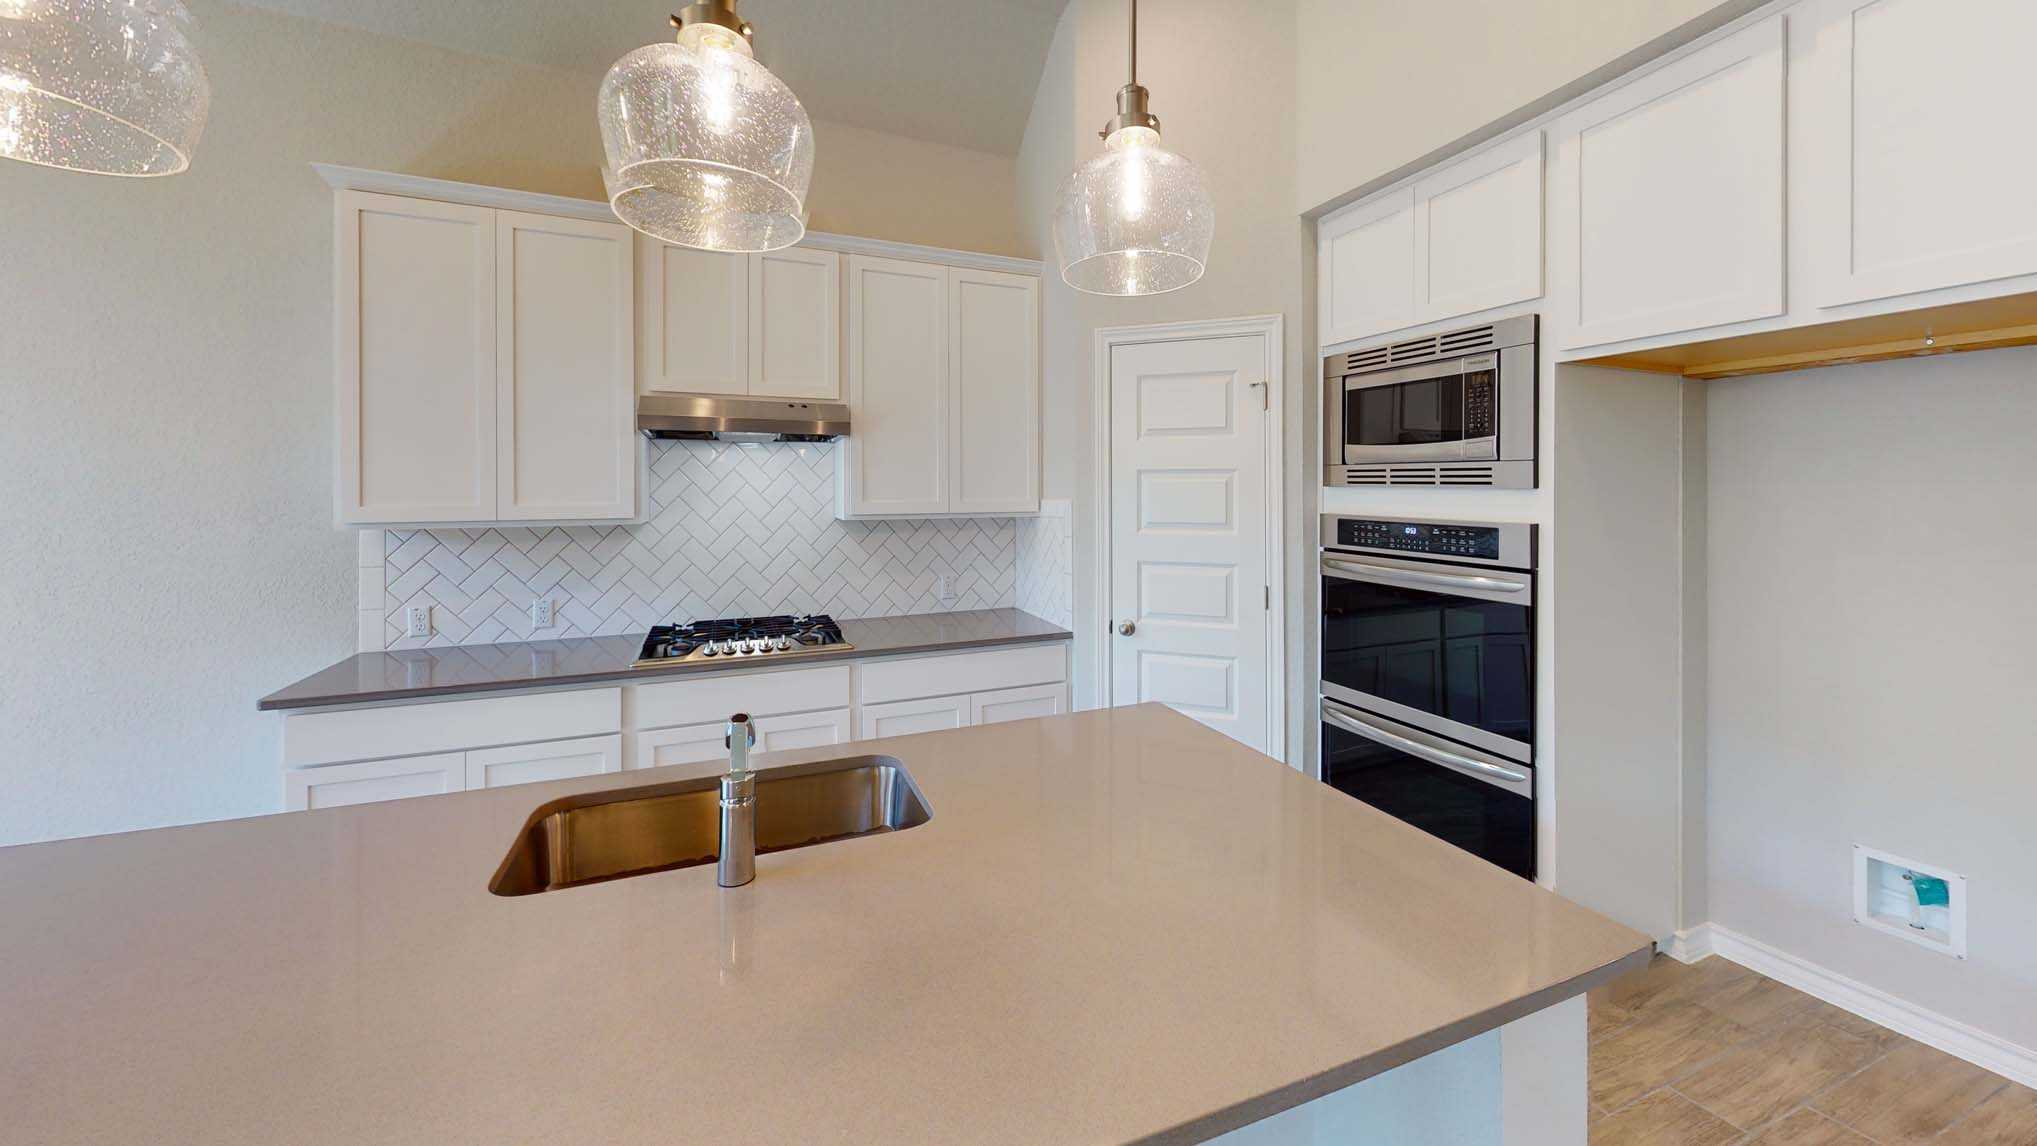 Kitchen featured in the Plan Dorchester By Highland Homes in San Antonio, TX